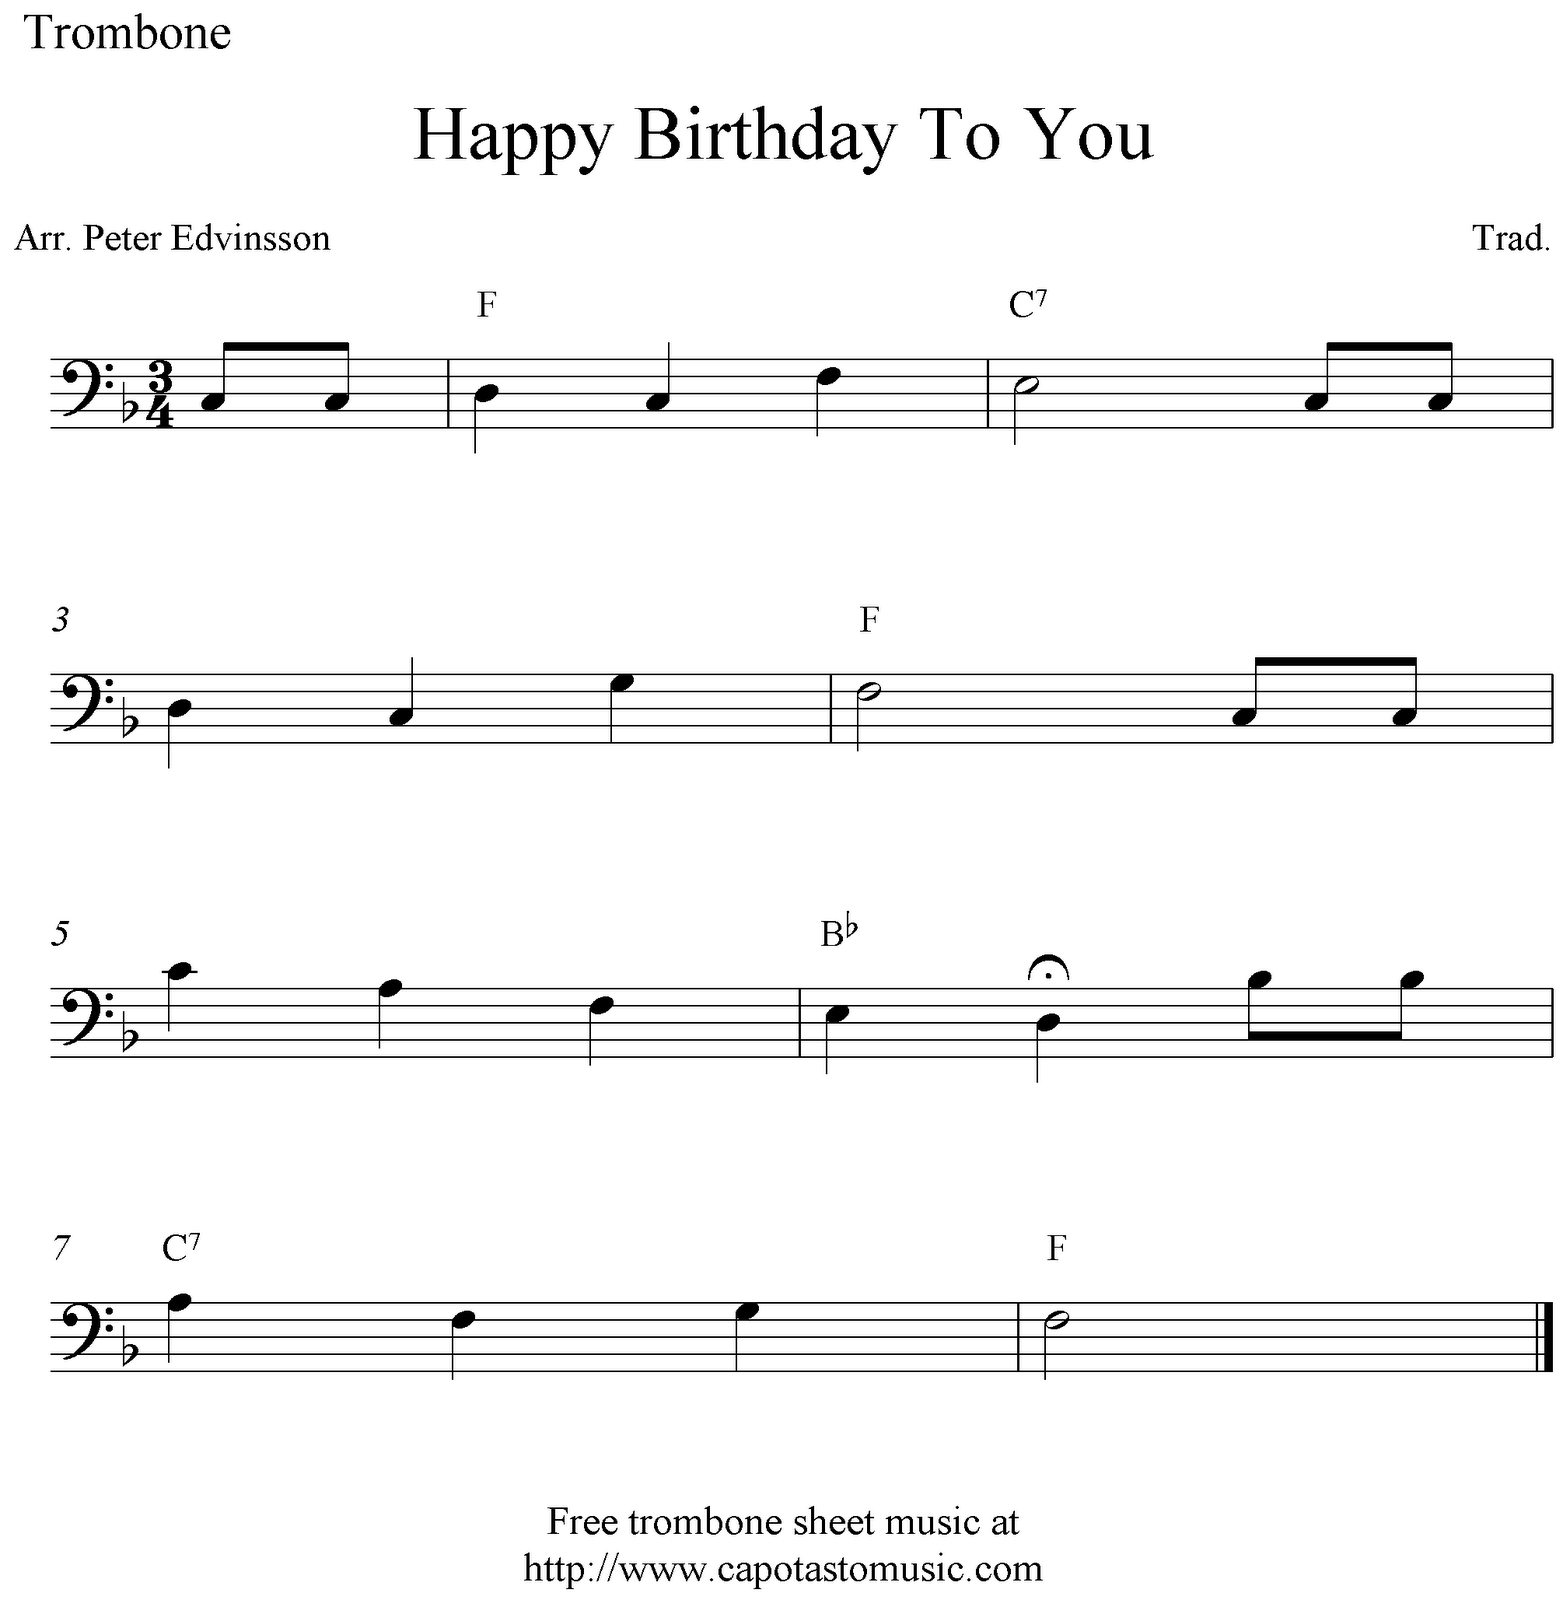 photograph regarding Free Printable Trombone Sheet Music called Delighted Birthday In the direction of Your self, no cost basic trombone sheet new music notes